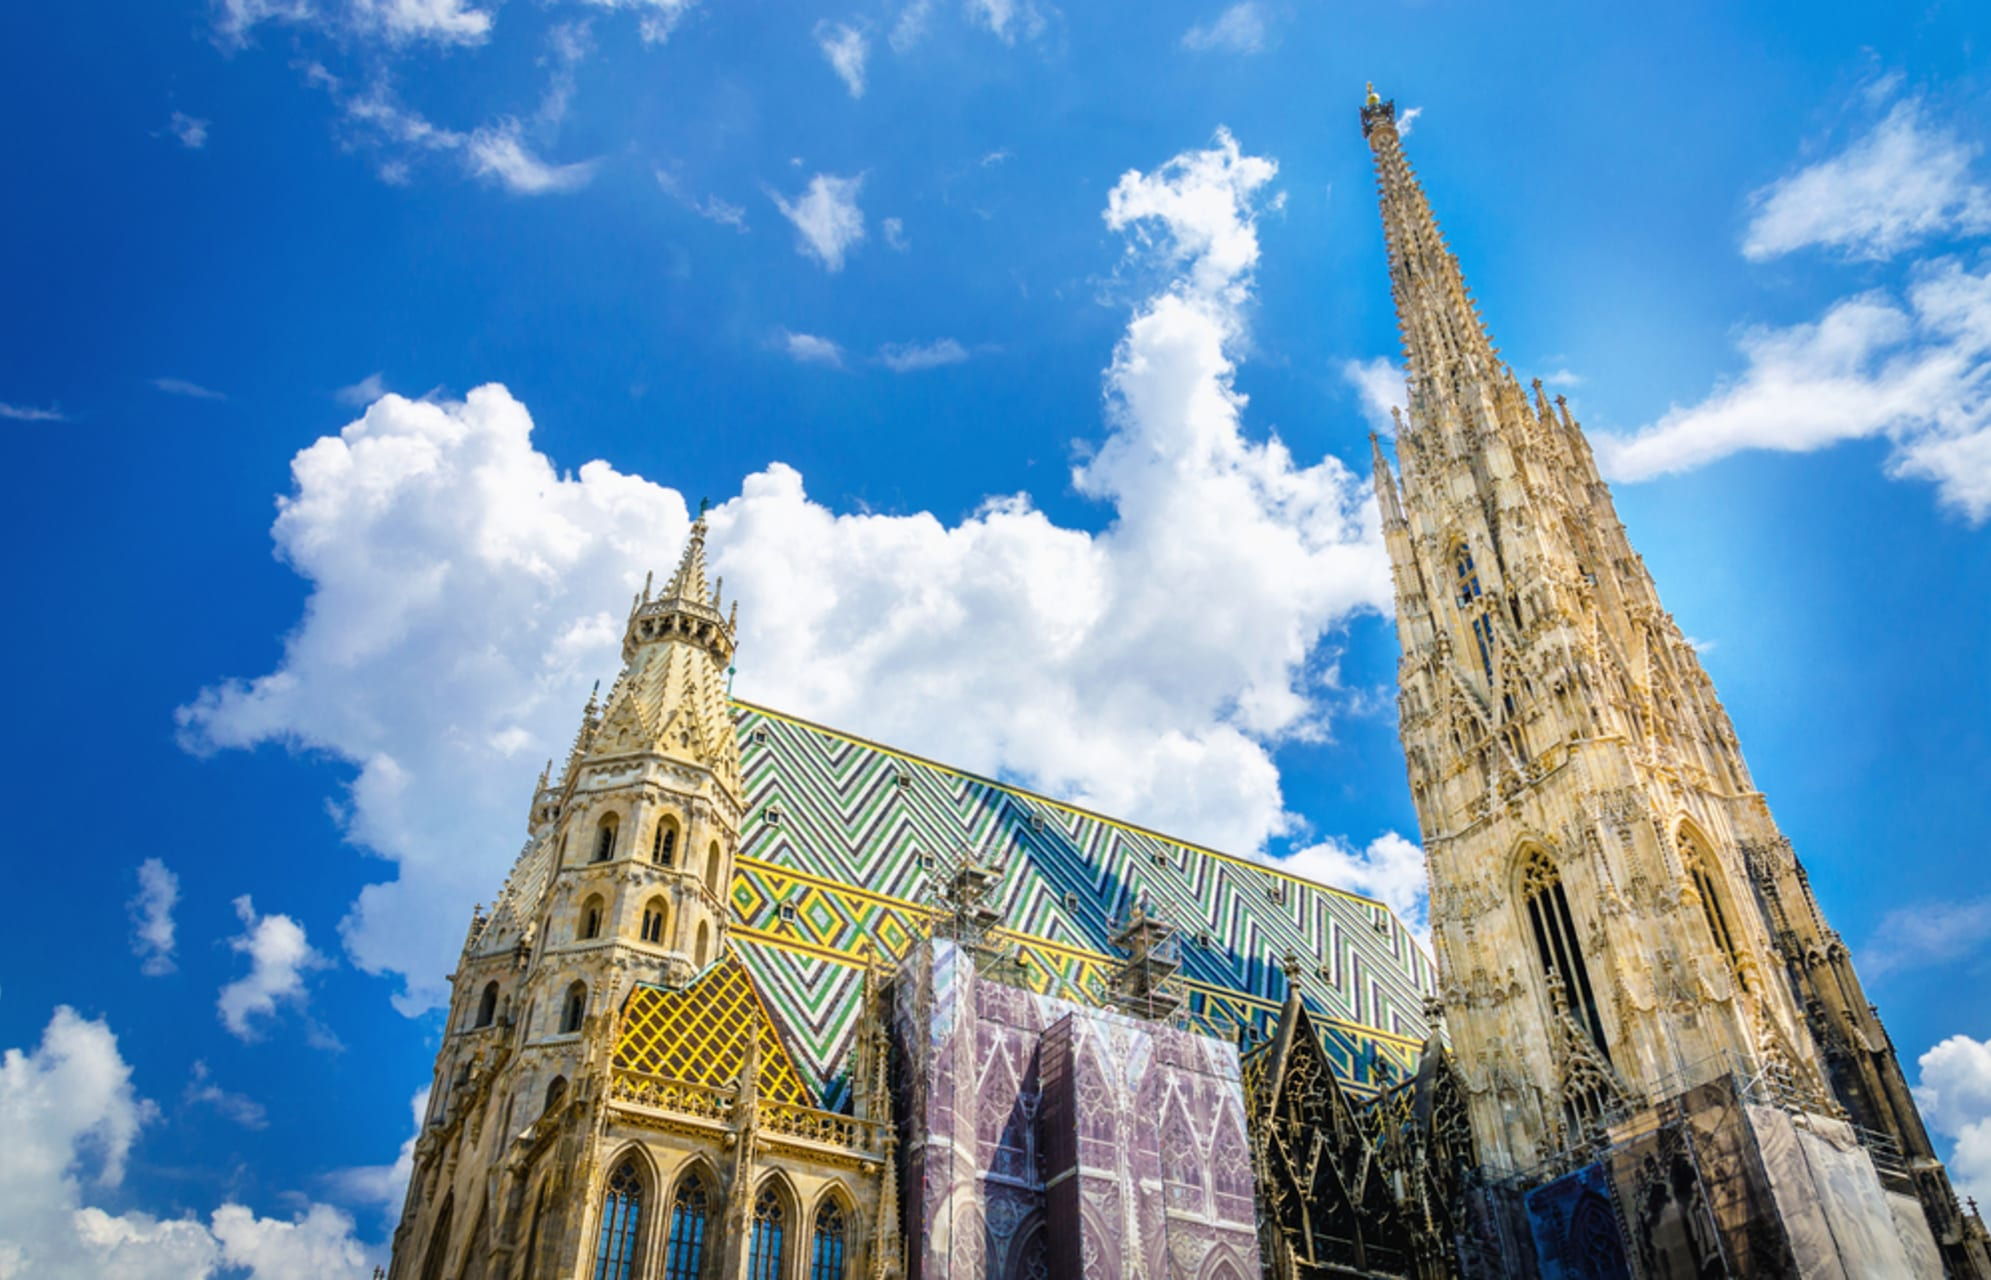 Vienna - Roses, Royals and Pastries:  A walking tour through Vienna's romantic Old Town